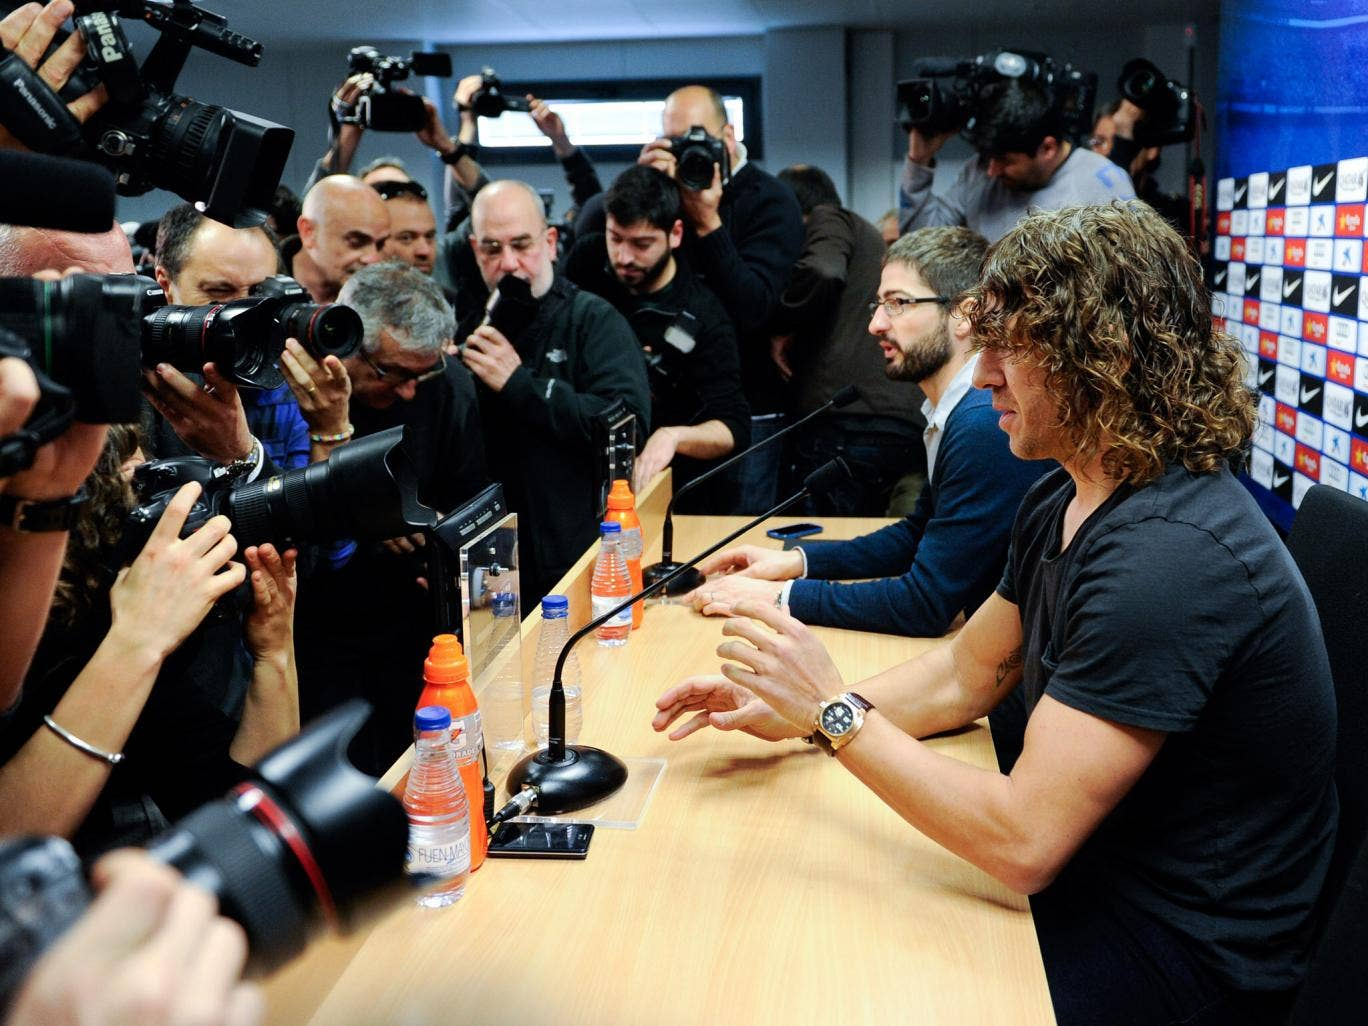 Carles Puyol of FC Barcelona faces the media during a press conference to announce he will be leaving the Catalan club at the end of the season